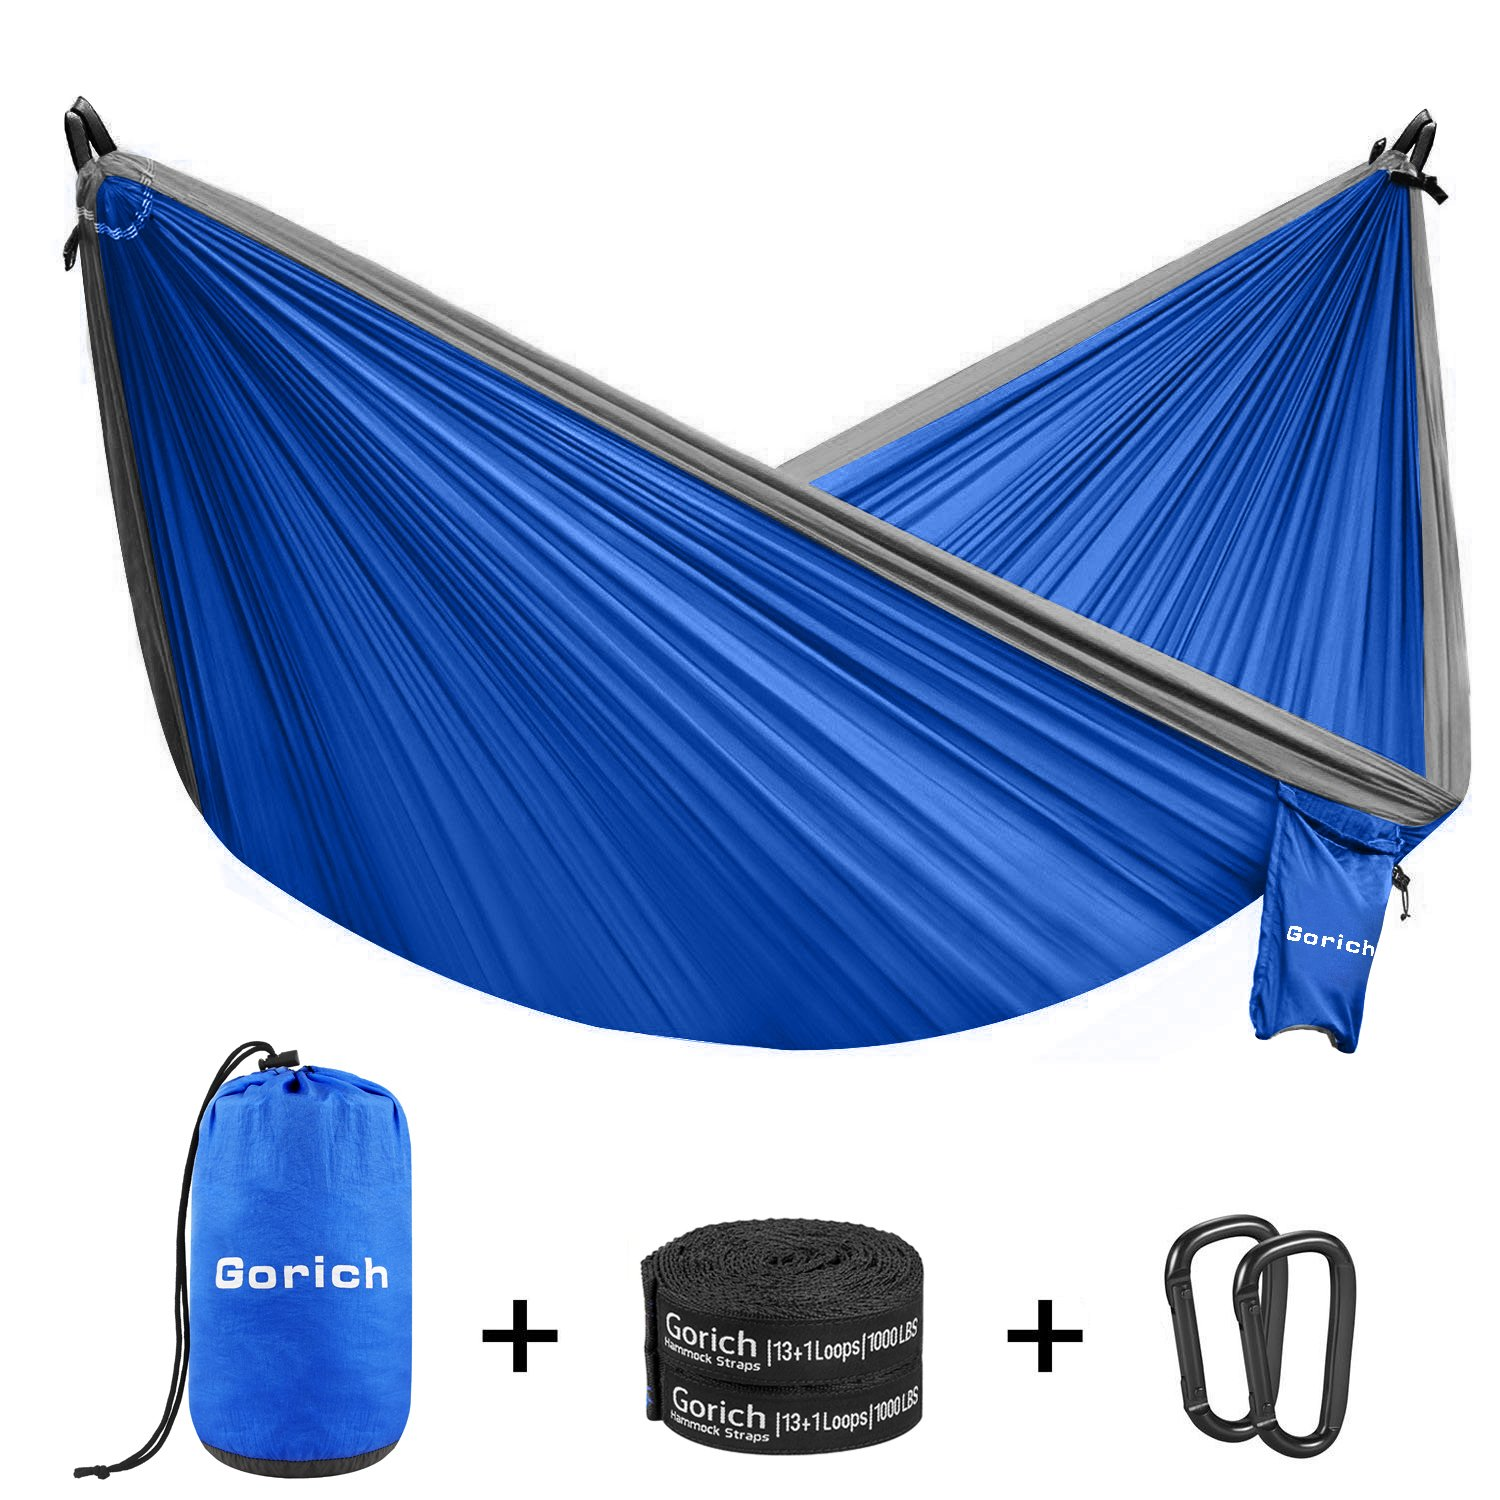 Gorich Double Parachute Camping Hammock,Lightweight Portable Hammock with Tree Straps & Steel Carabiners,Great 2 Person Hammock for Backpacking, Camping, Hiking, Travel, Beach, Yard. by Gorich